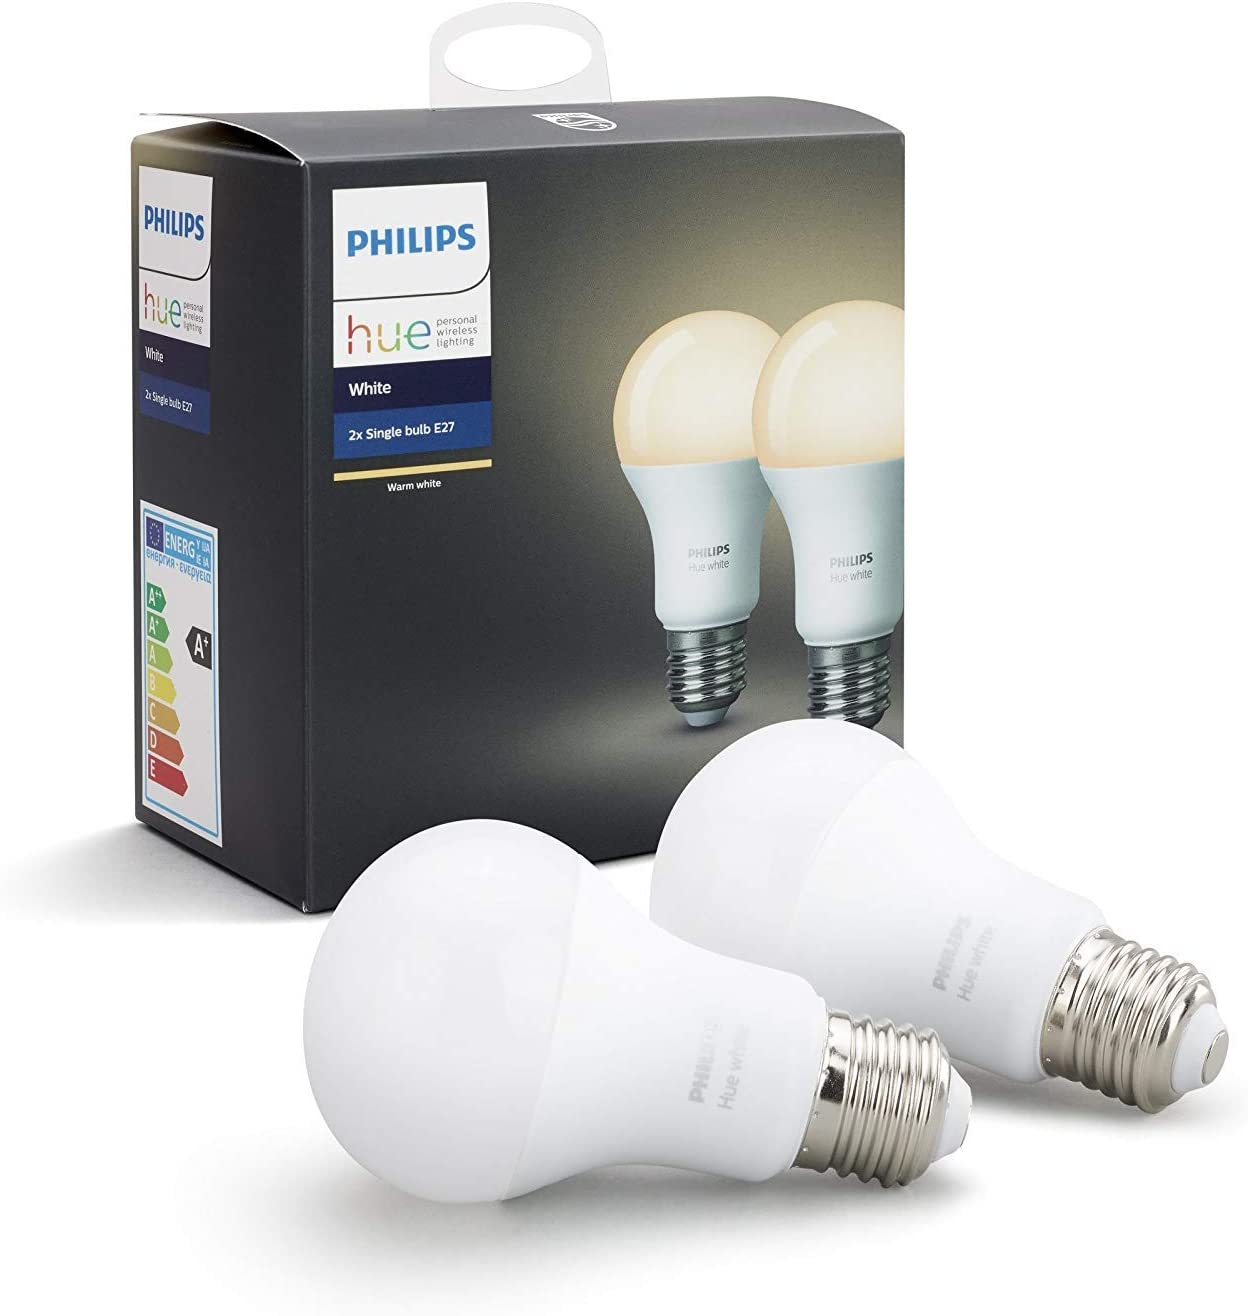 Philips Hue Pack 2 Bombillas Inteligentes LED E27, 9 W, Luz Blanca cálida, Compatible con Alexa y Google Home